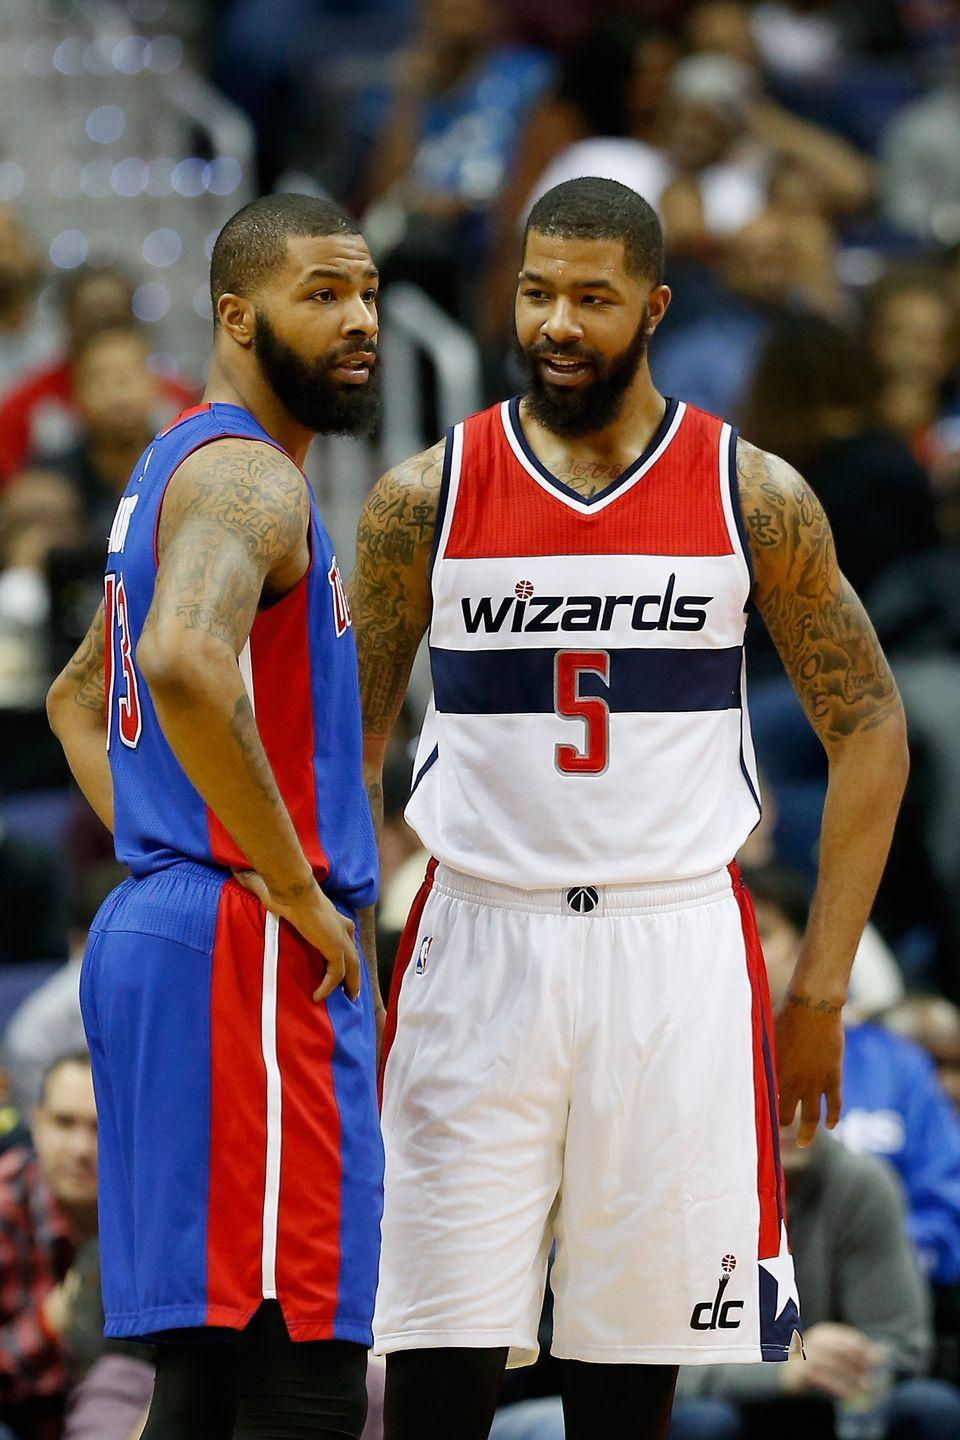 <p>Markieff and Marcus don't only share looks, they also share skills. Both are professional NBA basketball players in Los Angeles—Markieff for the Lakers and Marcus for the Clippers.</p>